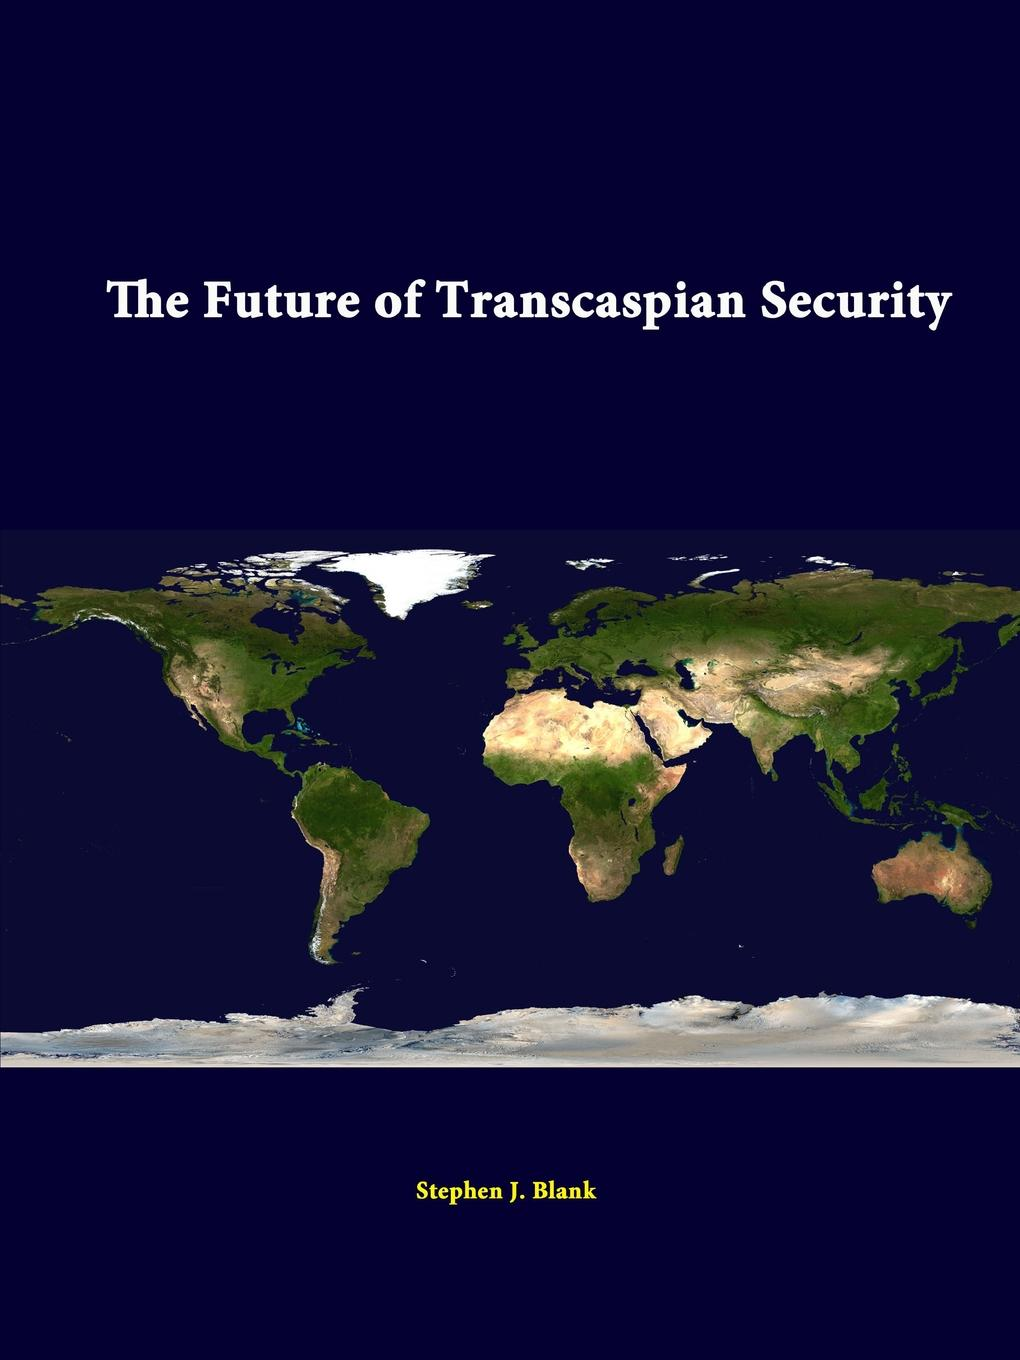 Stephen J. Blank, Strategic Studies Institute The Future of Transcaspian Security f torkunov c noonan t shakleina russia and united states in the evoling world order